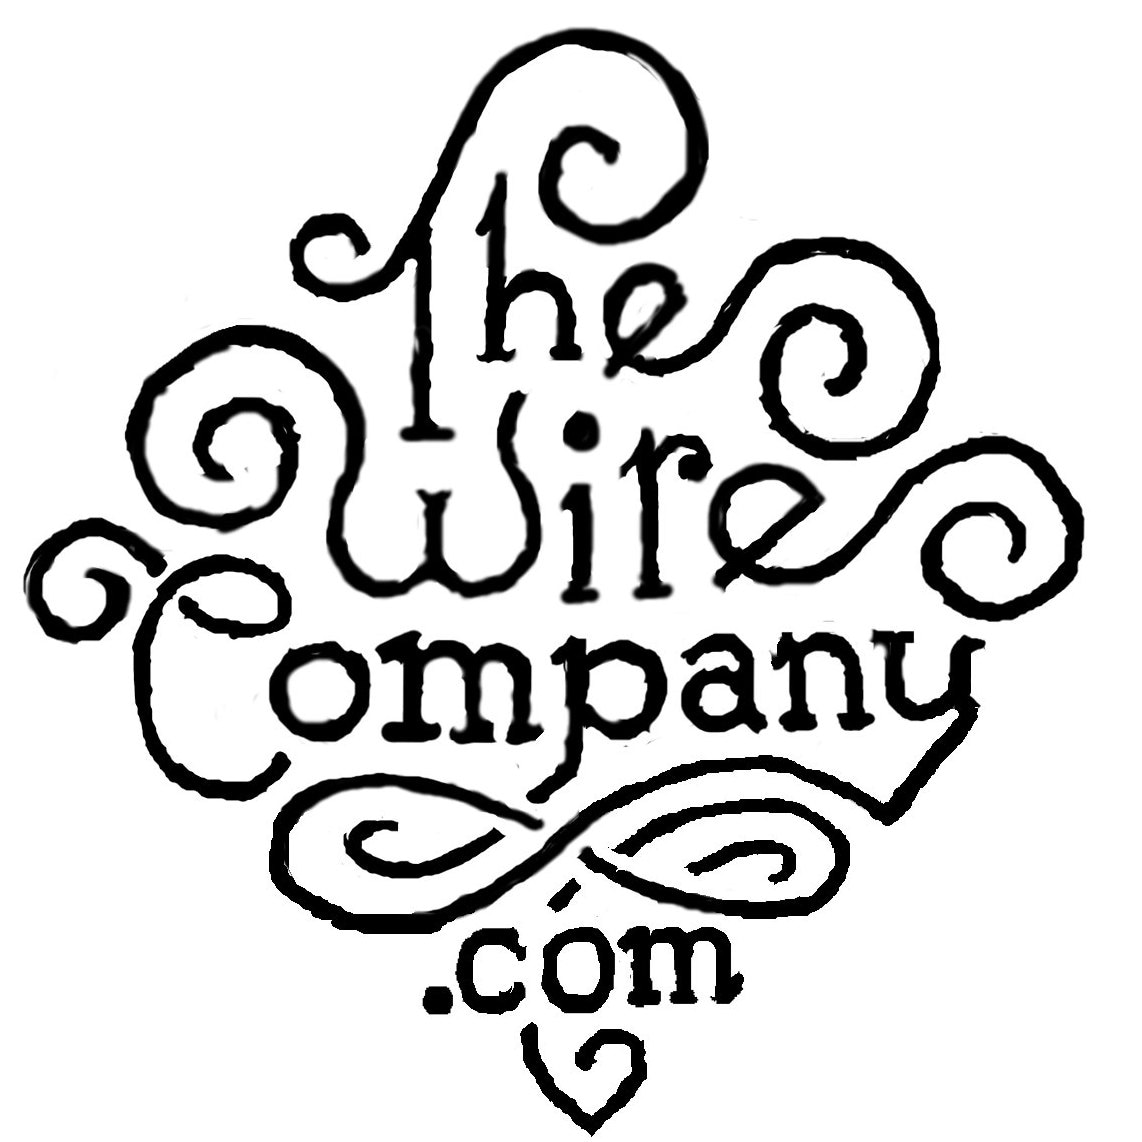 Order from me online Shipped to your home for by TheWireCompany